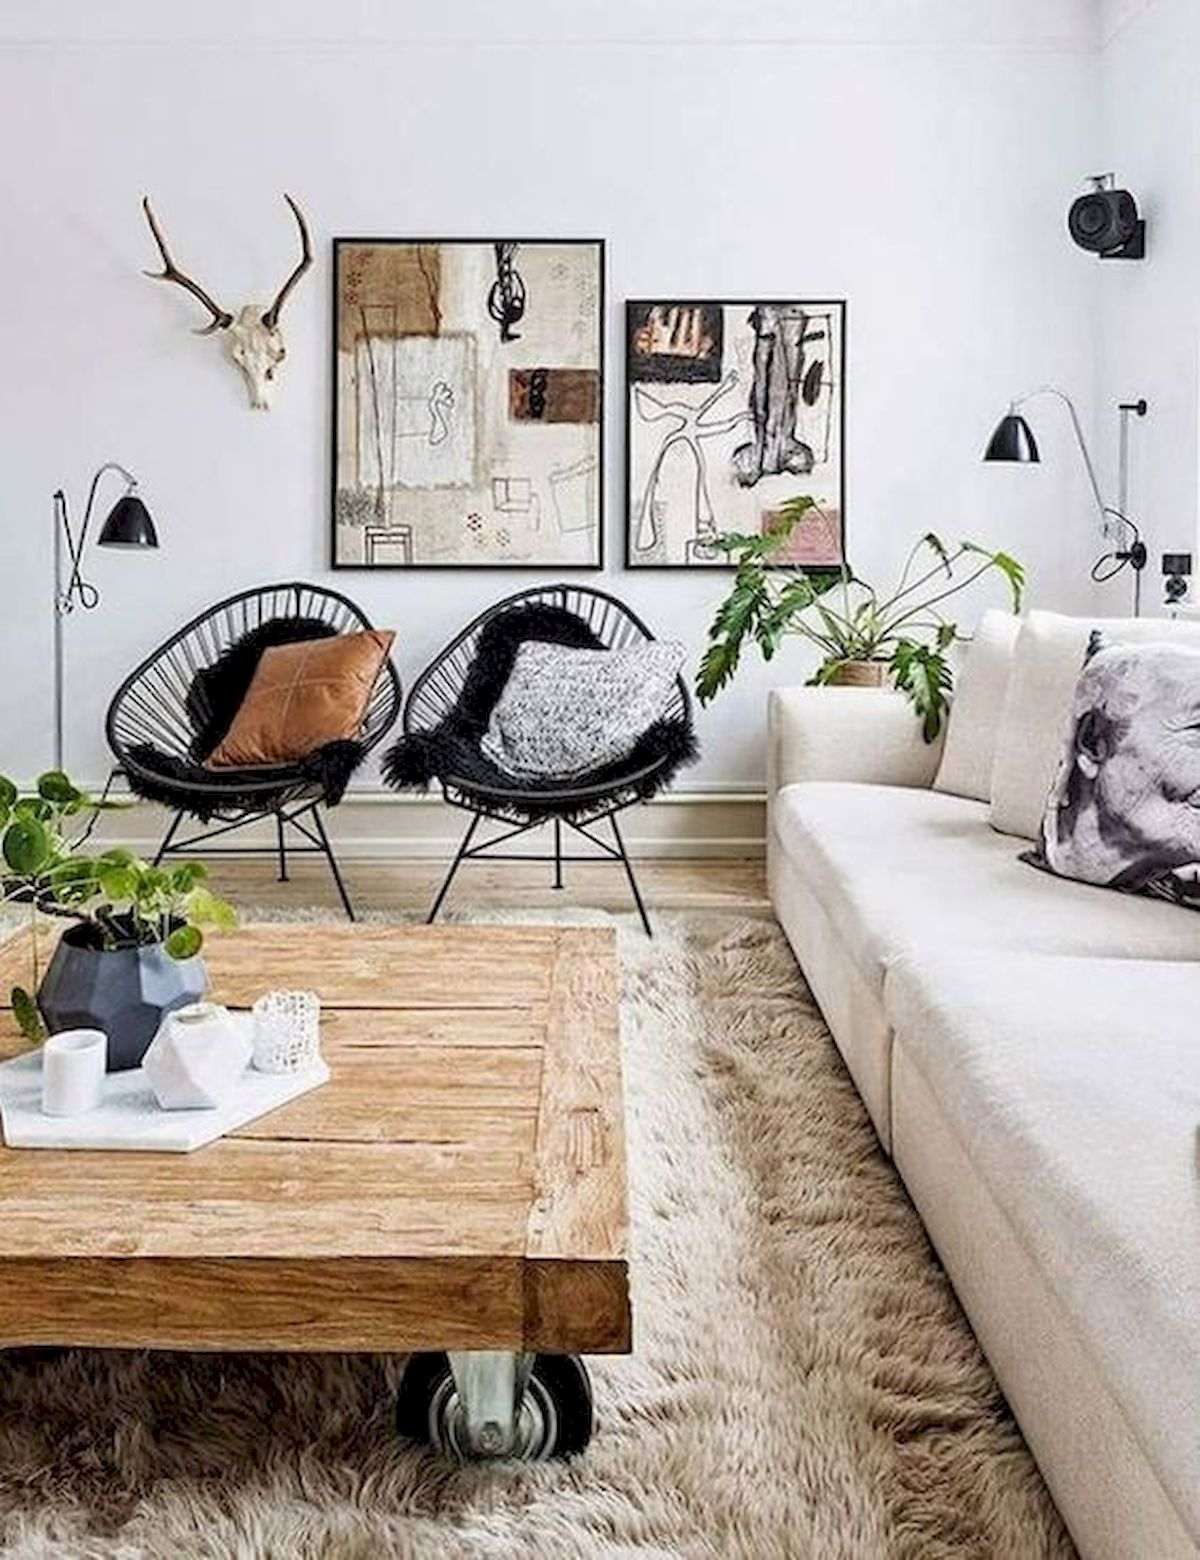 30 Awesome Small Apartment Design and Decor Ideas With Farmhouse Styles (22)